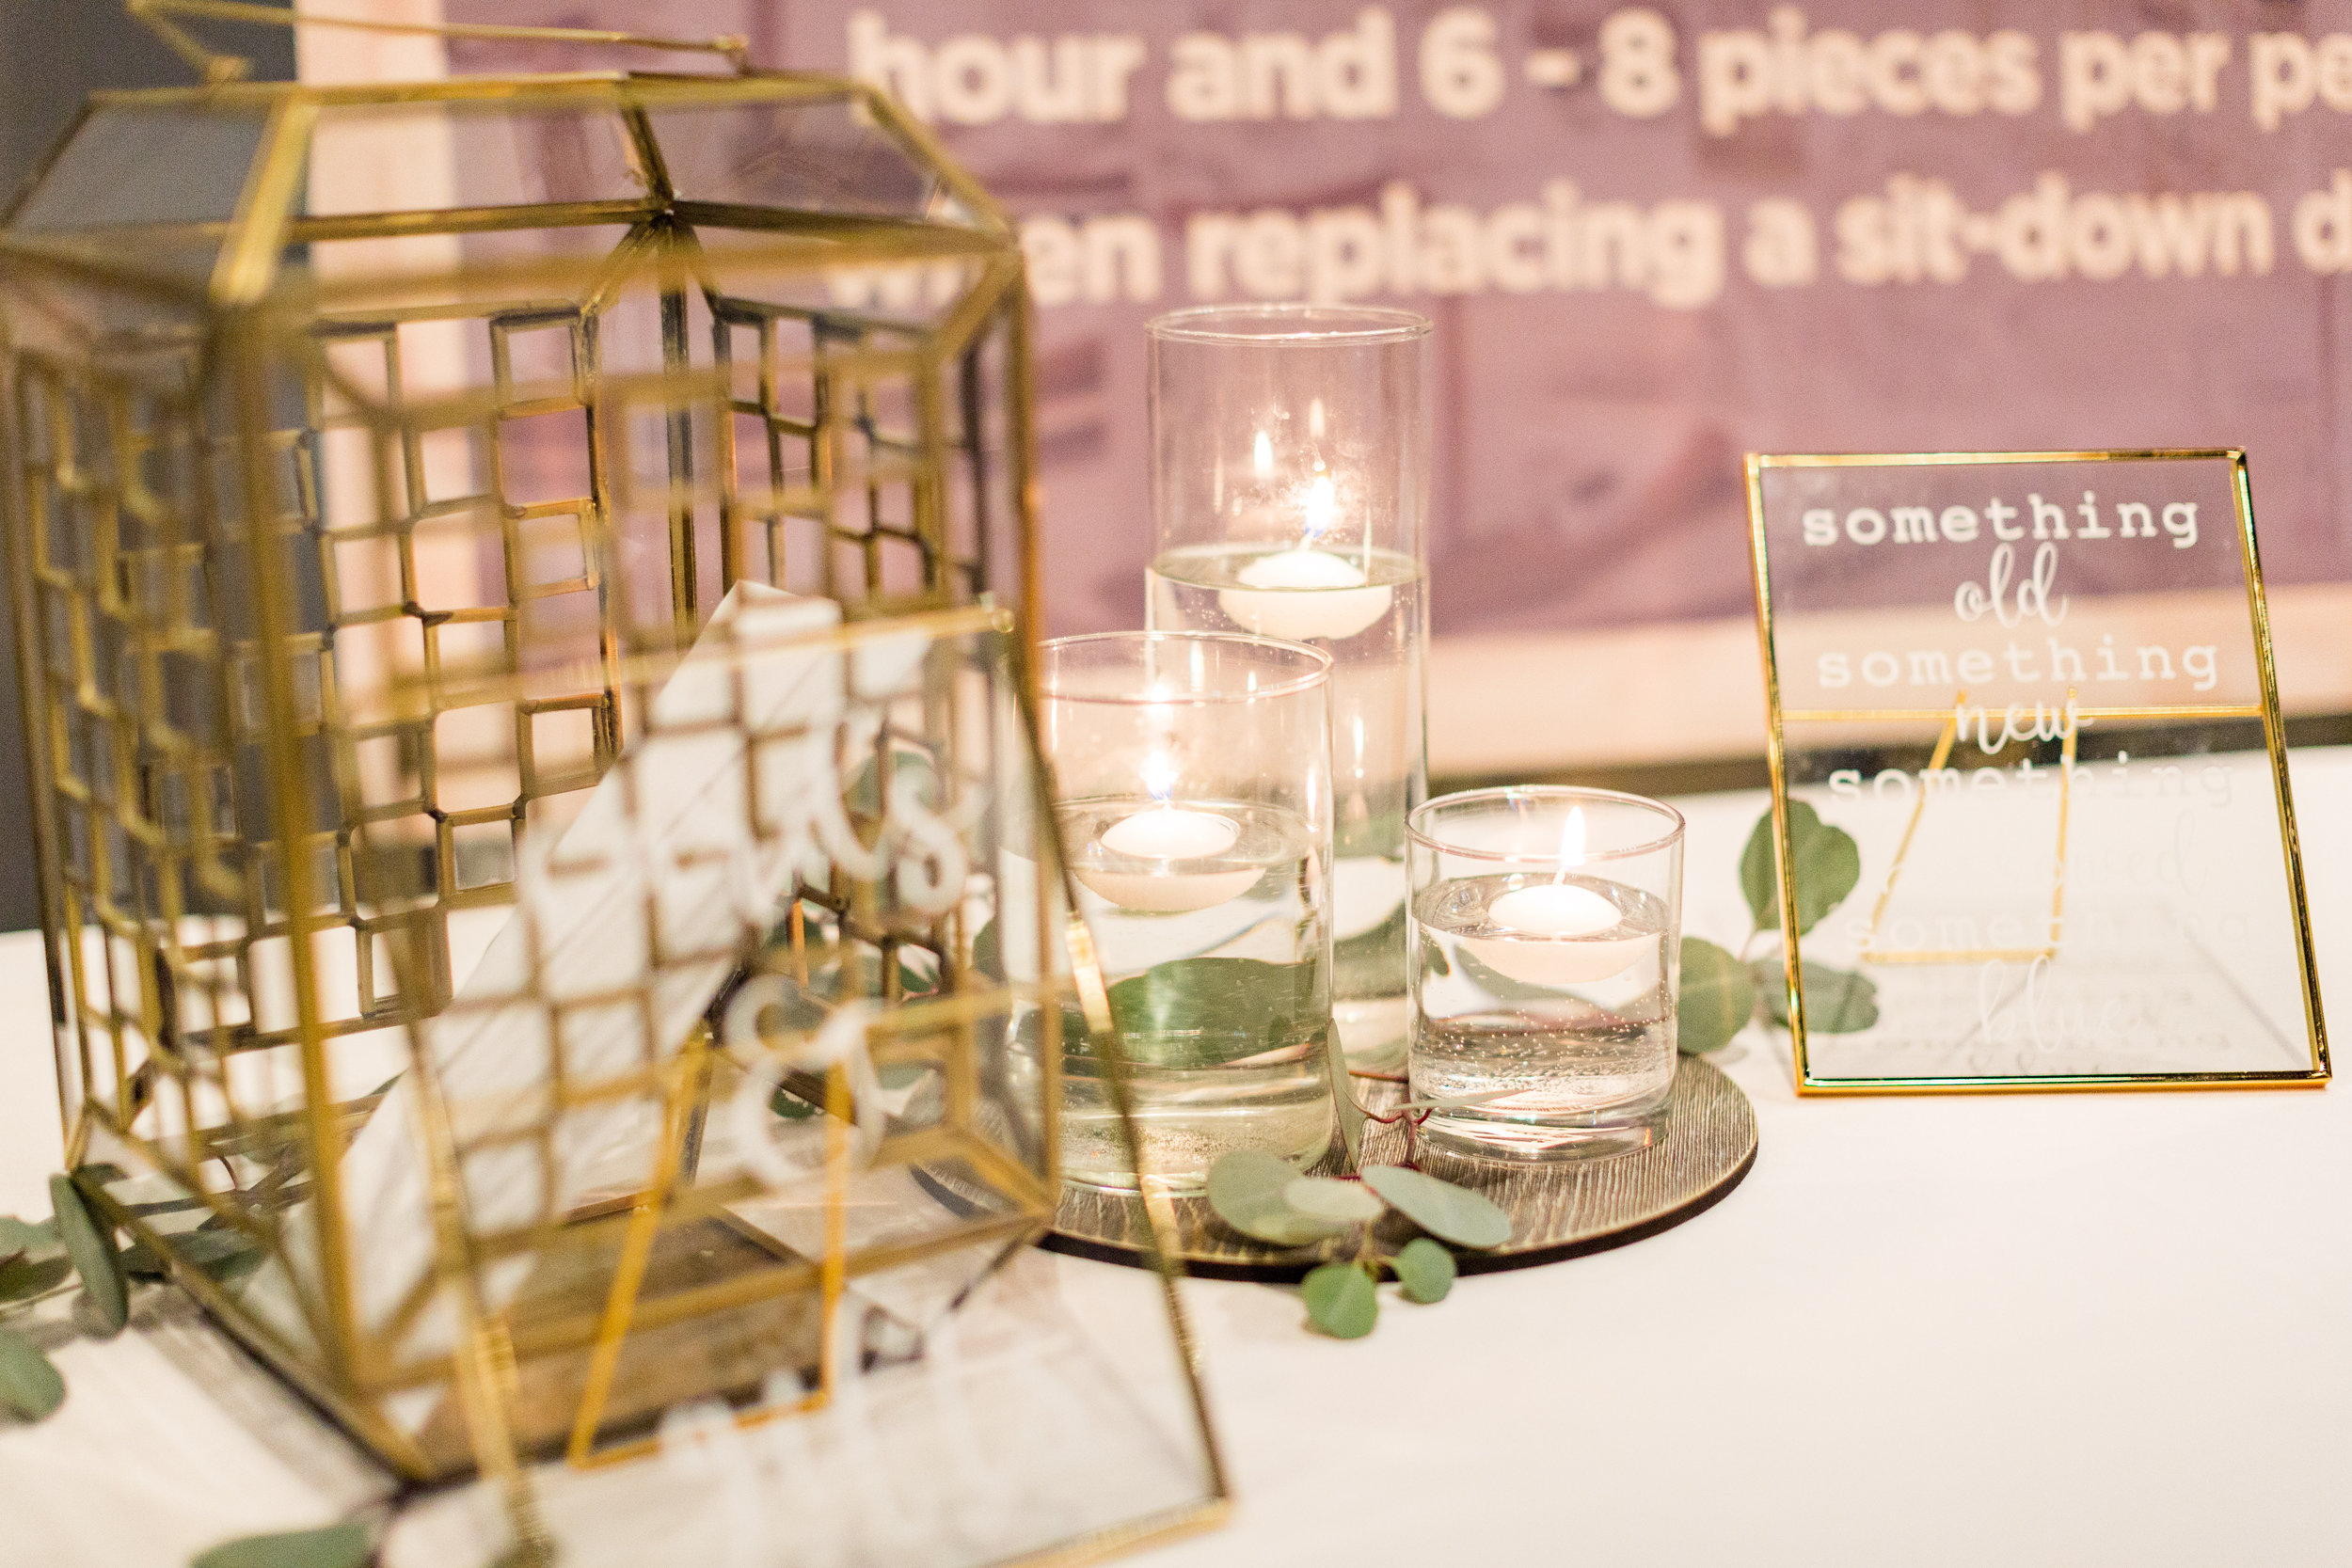 Gold & glass lantern card box  Grey wooden charger plates  Assorted size cylinder vases  Custom gold & glass frame signage  Photo by  Jenna Rachelle Photography